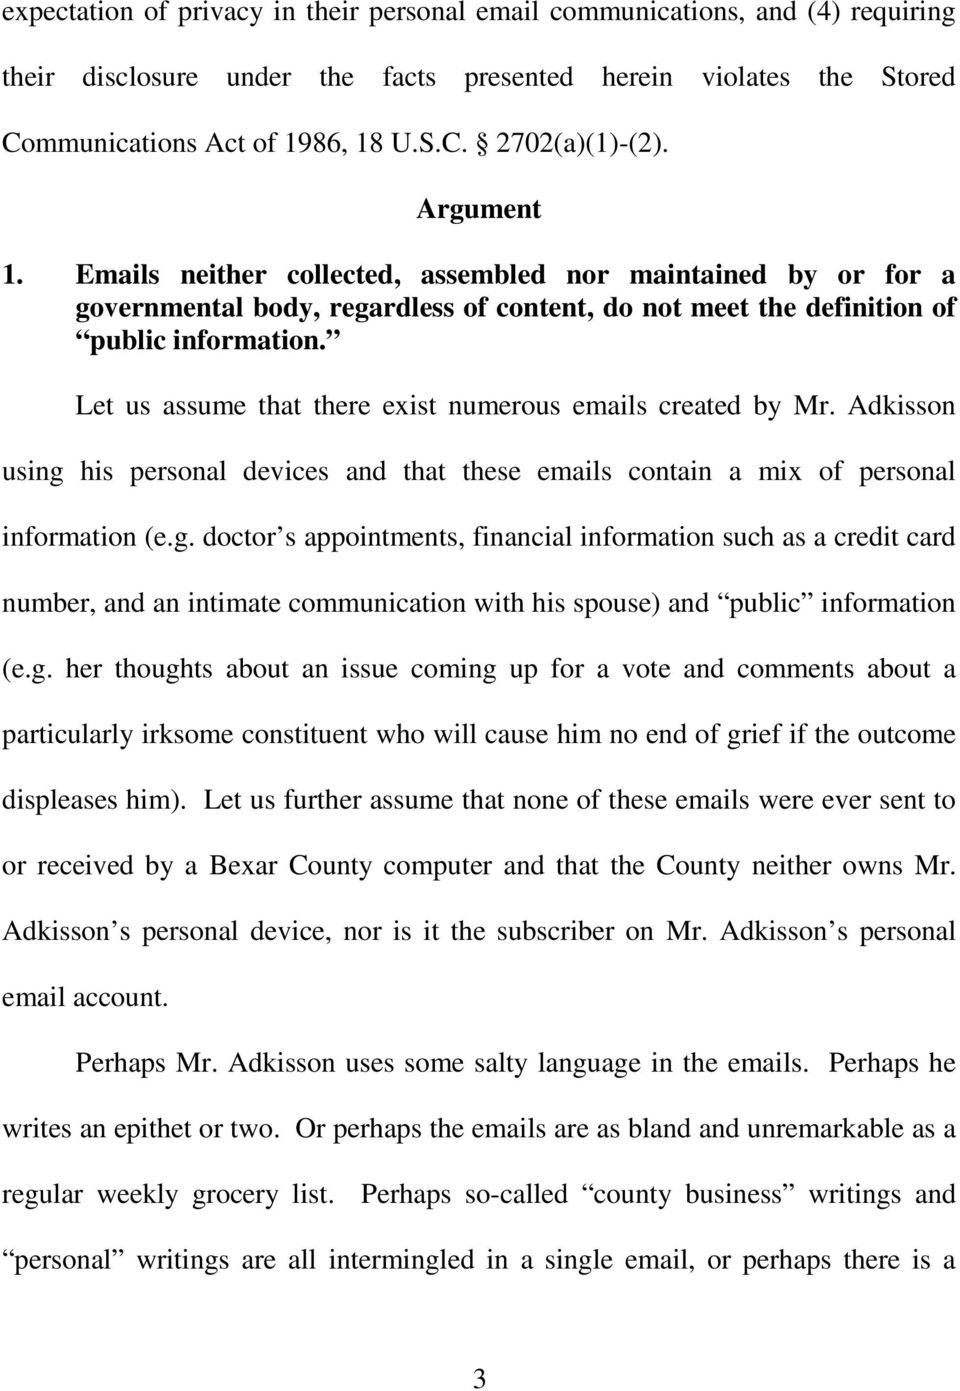 Let us assume that there exist numerous emails created by Mr. Adkisson using